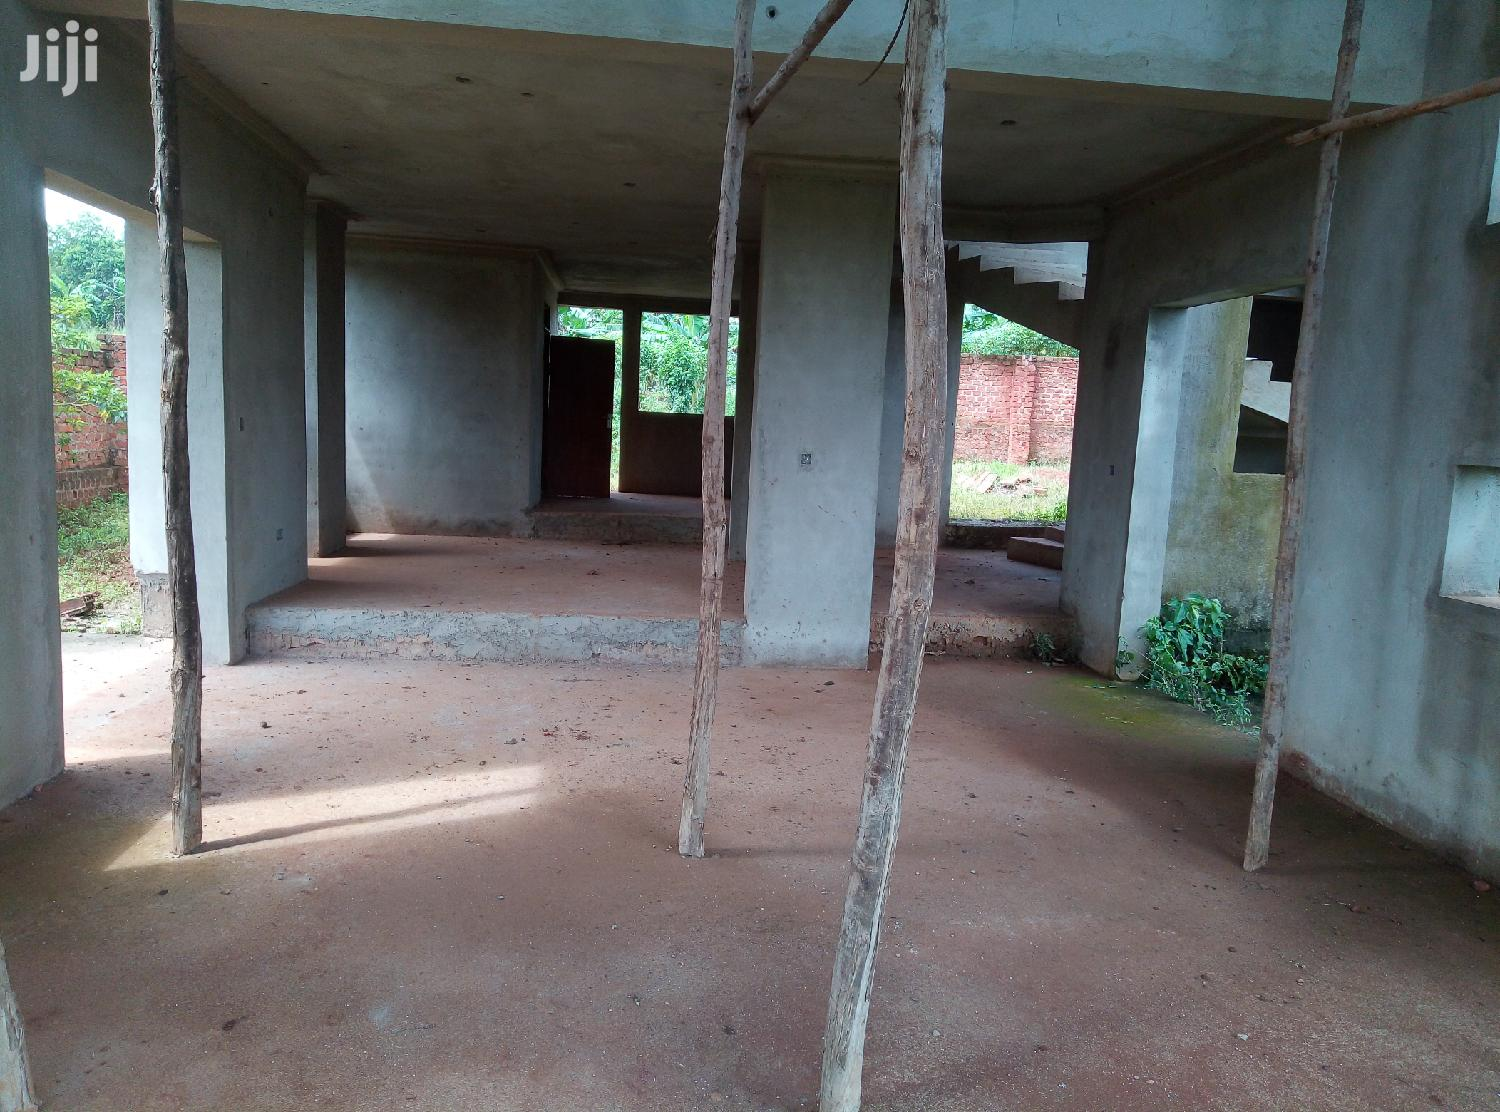 Executive Four Bedroom House For Sale   Houses & Apartments For Sale for sale in Kampala, Central Region, Uganda